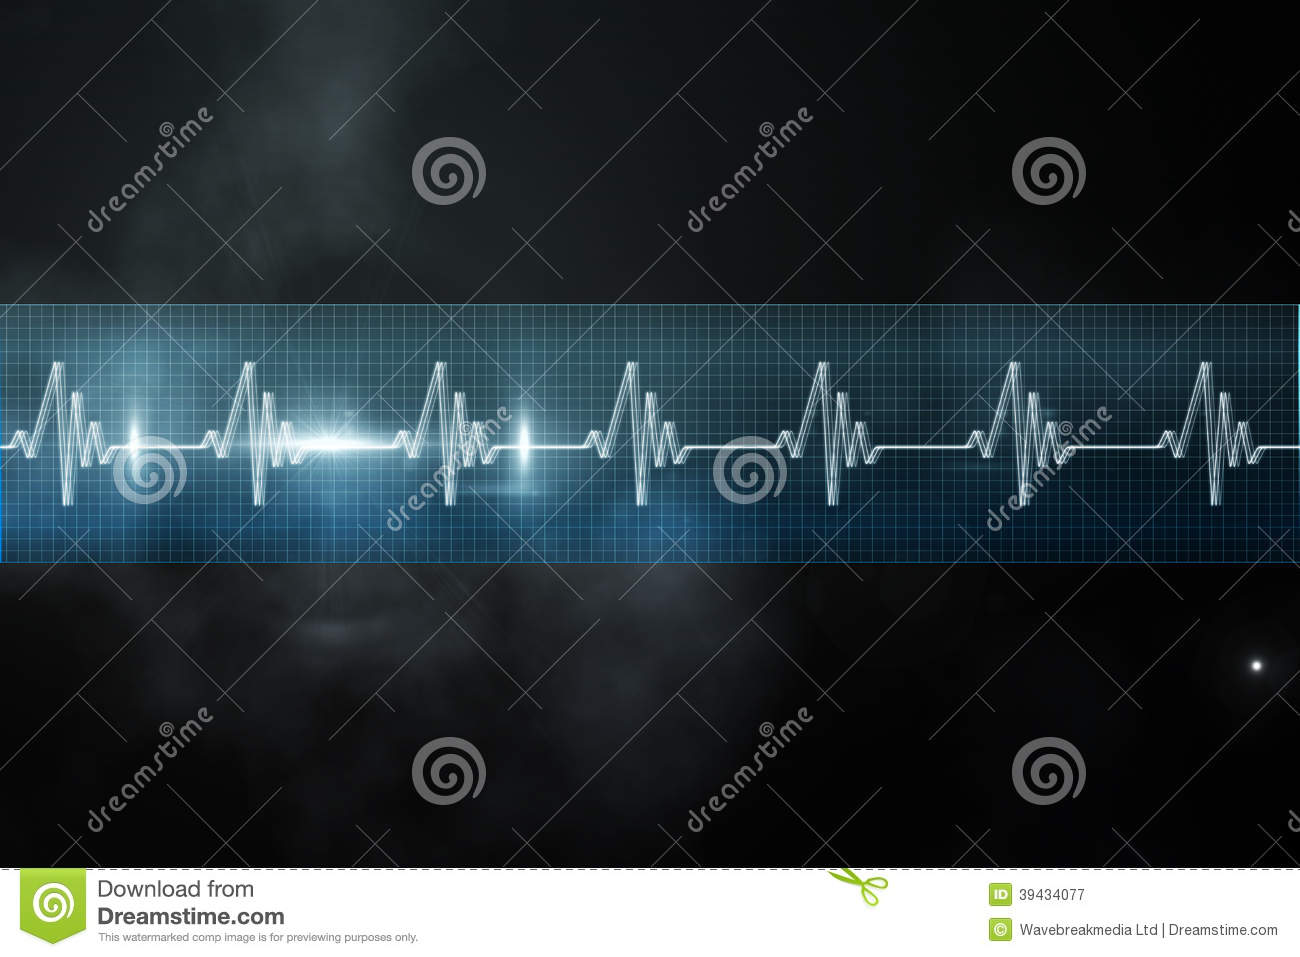 ECG line in blue and black